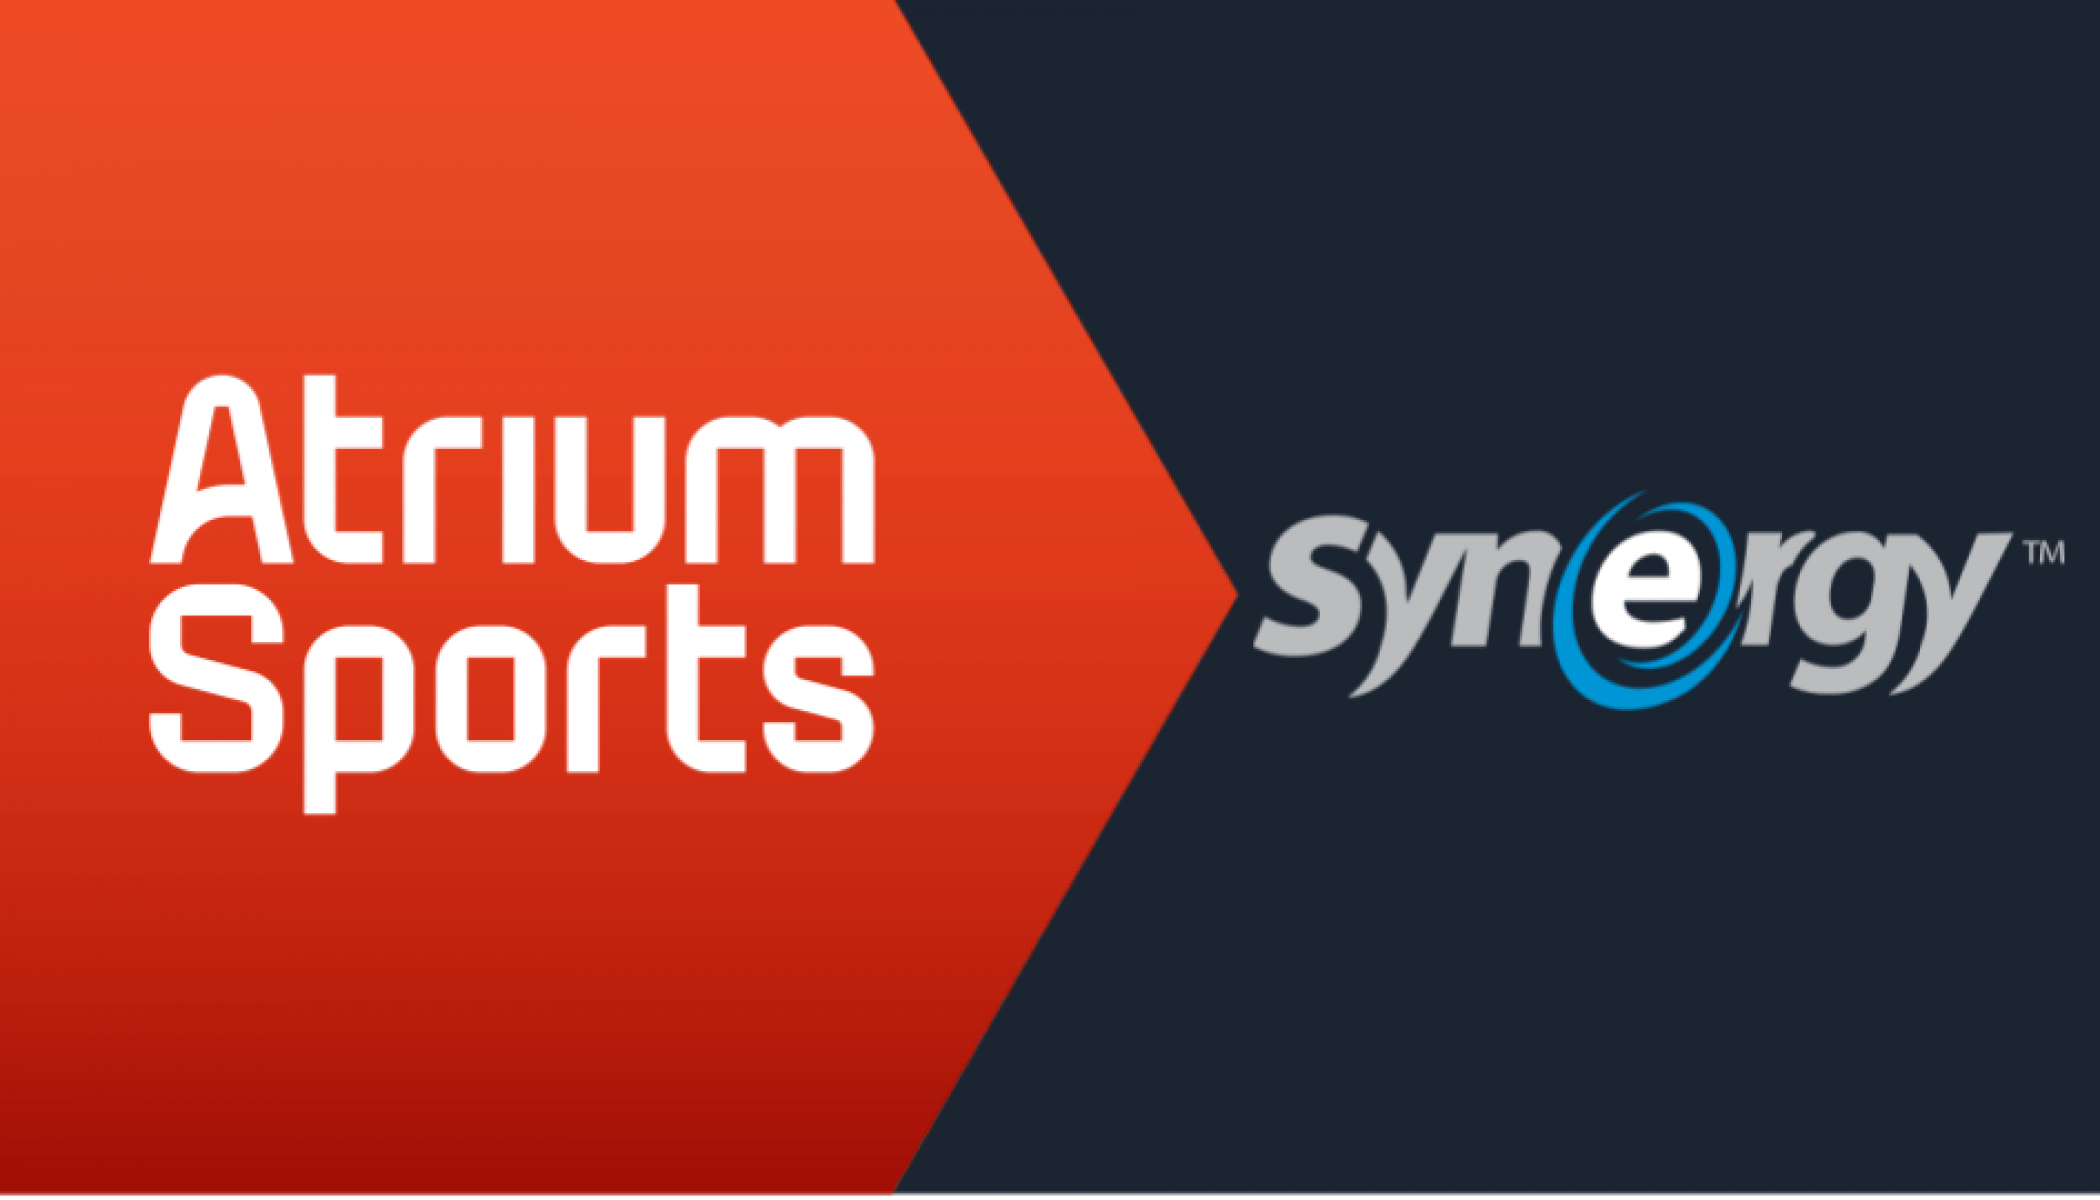 Atrium Sports Rebrands As Synergy Sports After Merging Entities